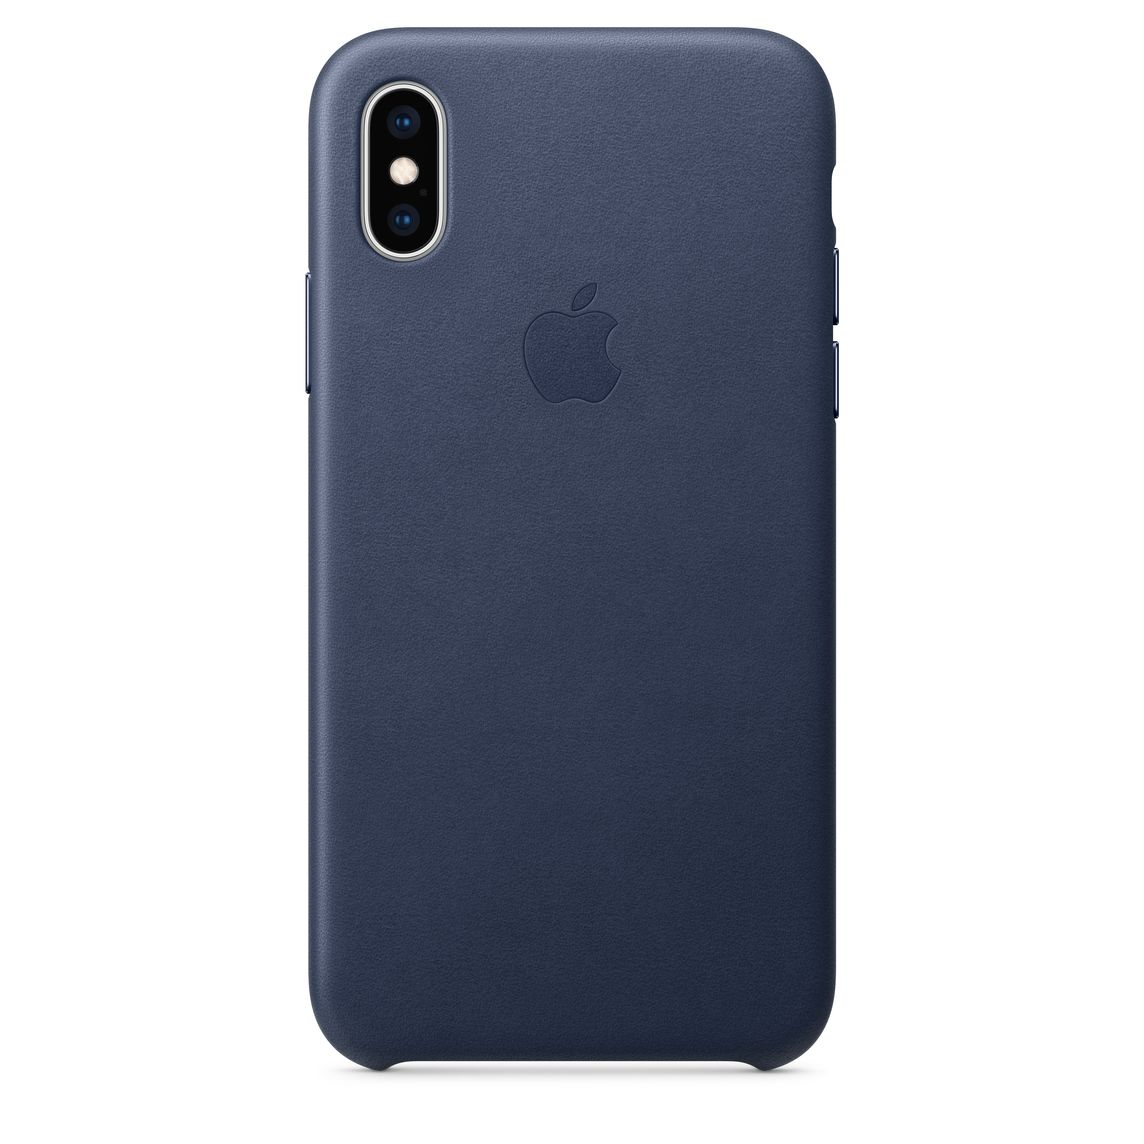 huge discount 49295 1f307 iPhone XS Leather Case - Midnight Blue